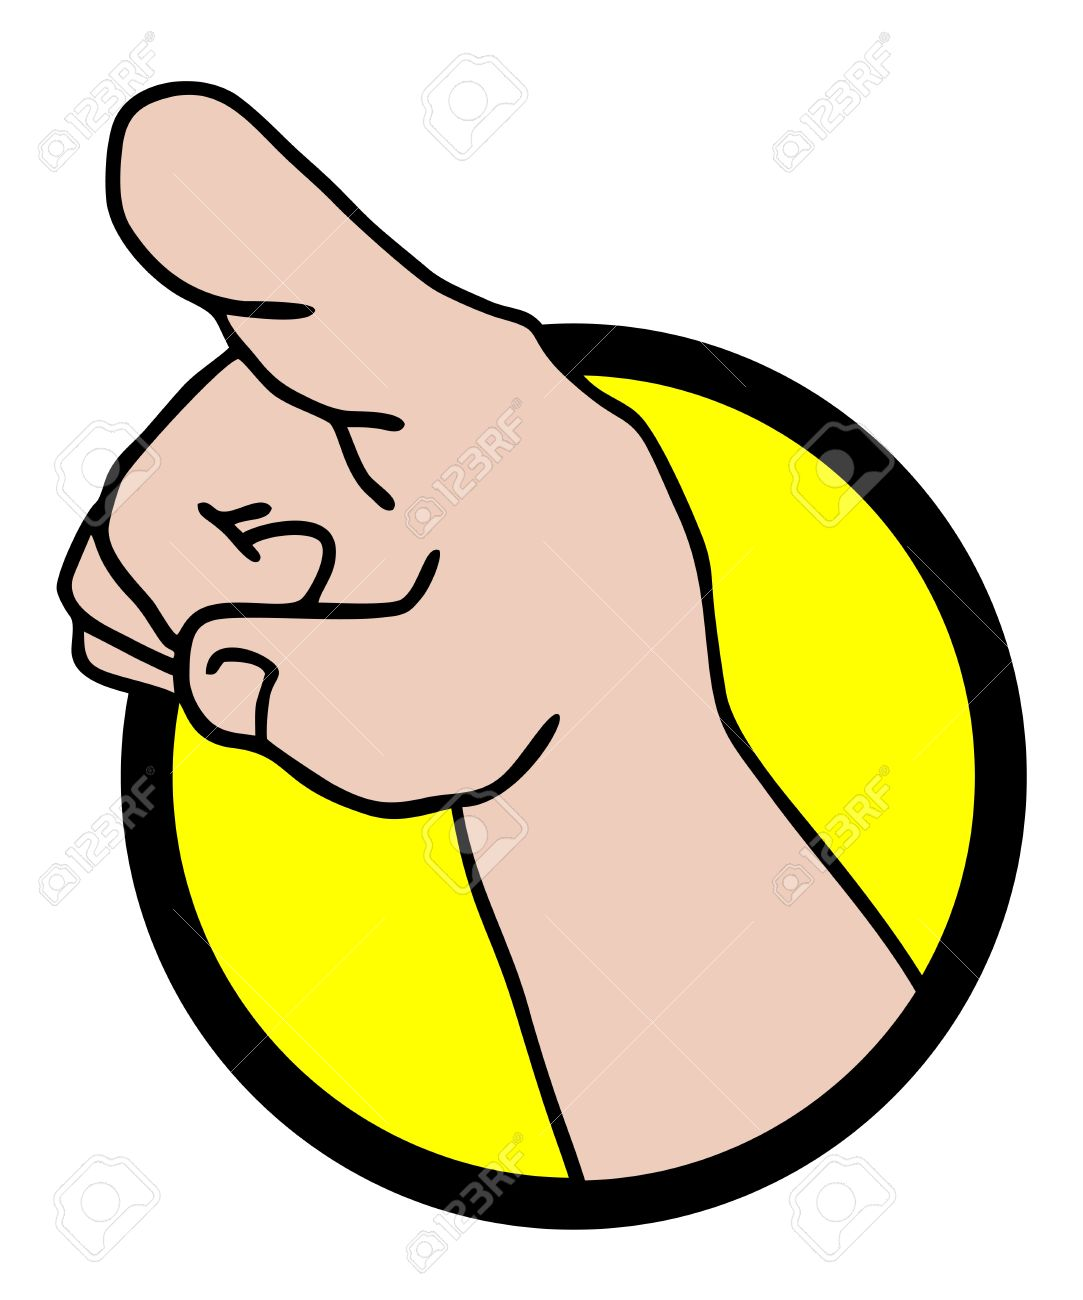 Finger hand icon Stock Vector - 17618539